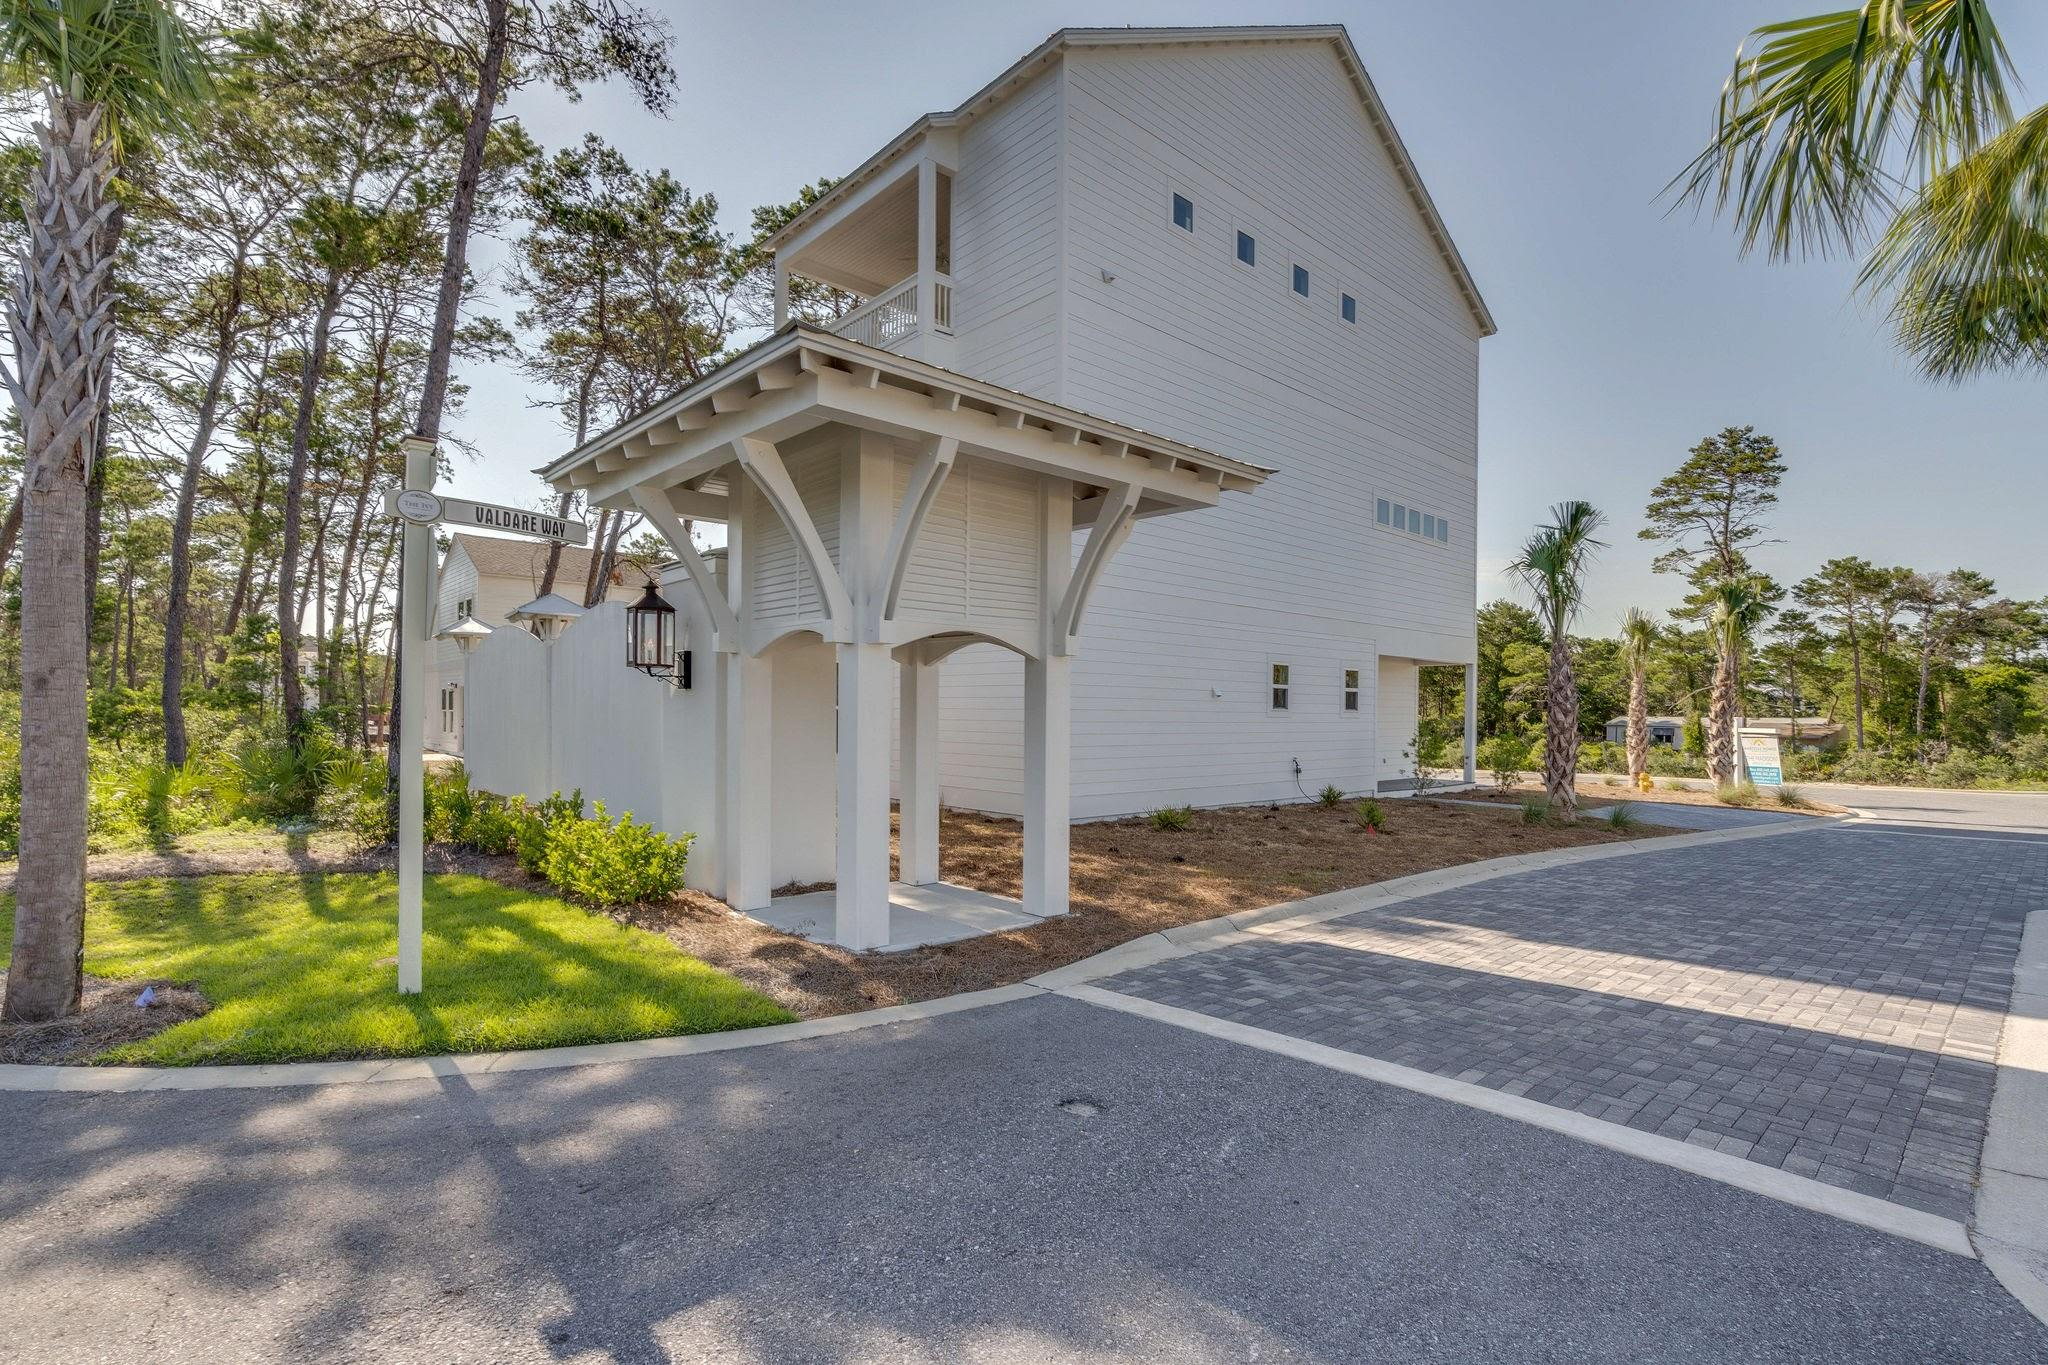 Photo of home for sale at 33 Valdare, Rosemary Beach FL